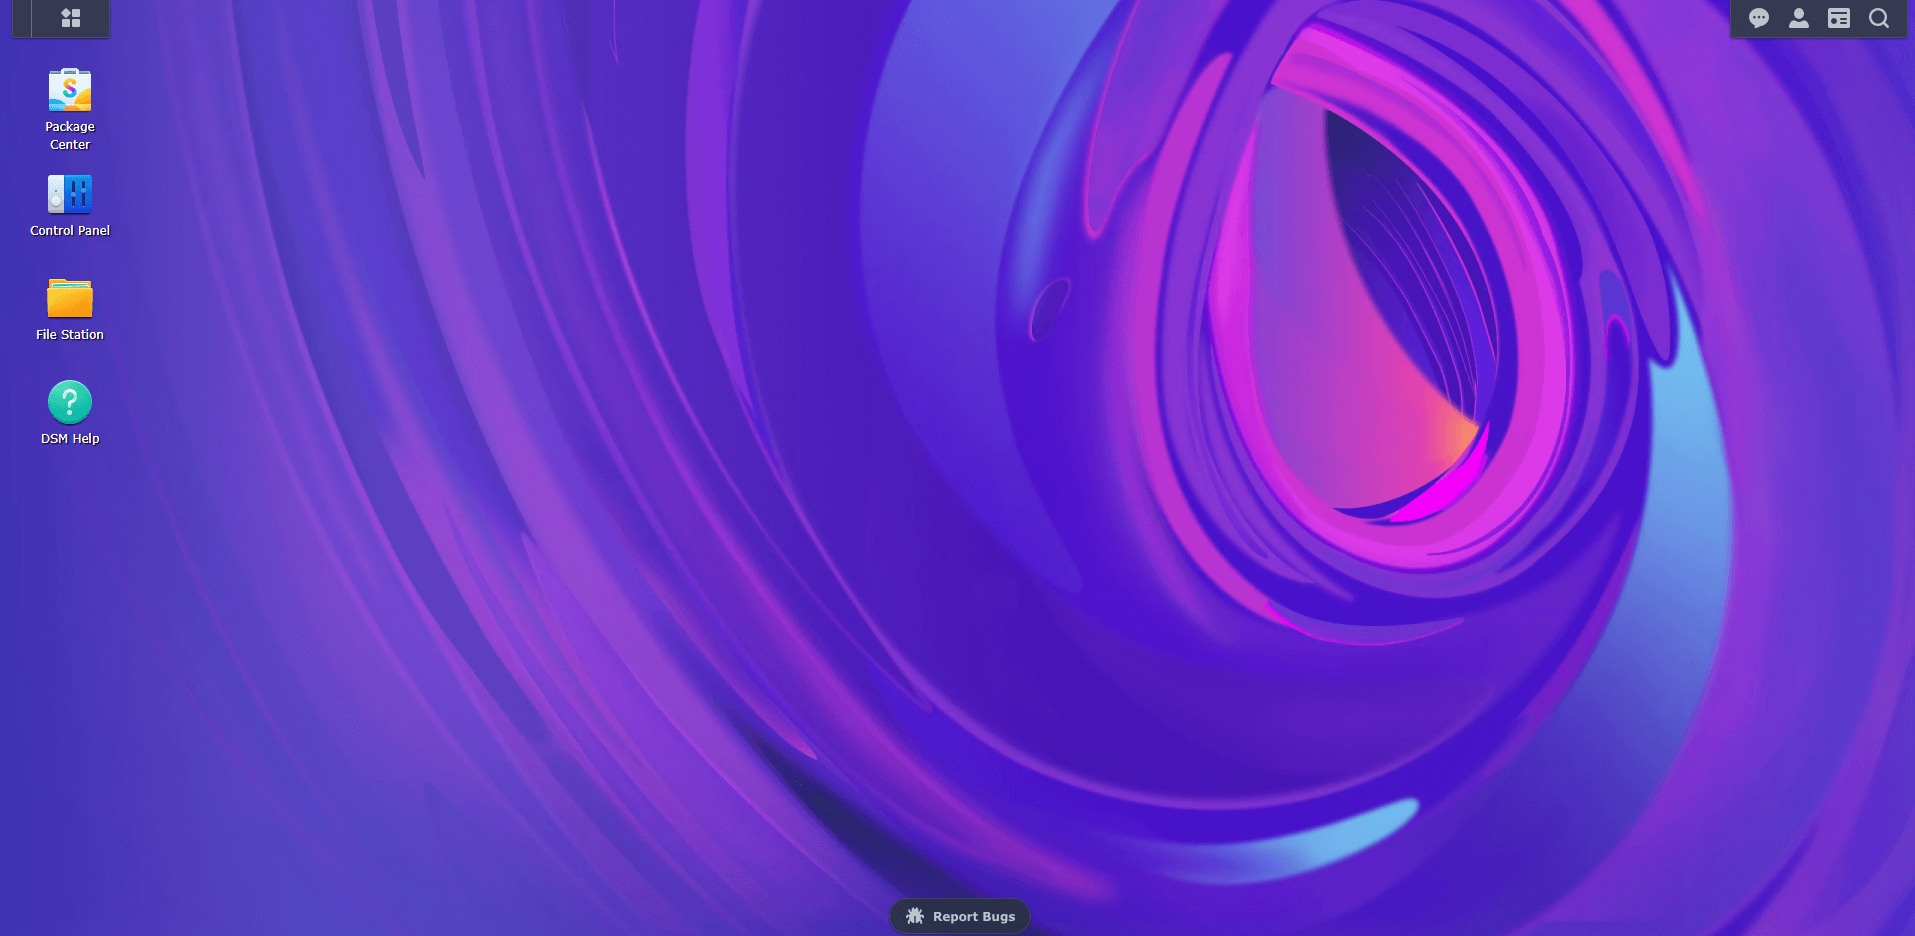 8 Synology DSM 7 abstract wallpaper